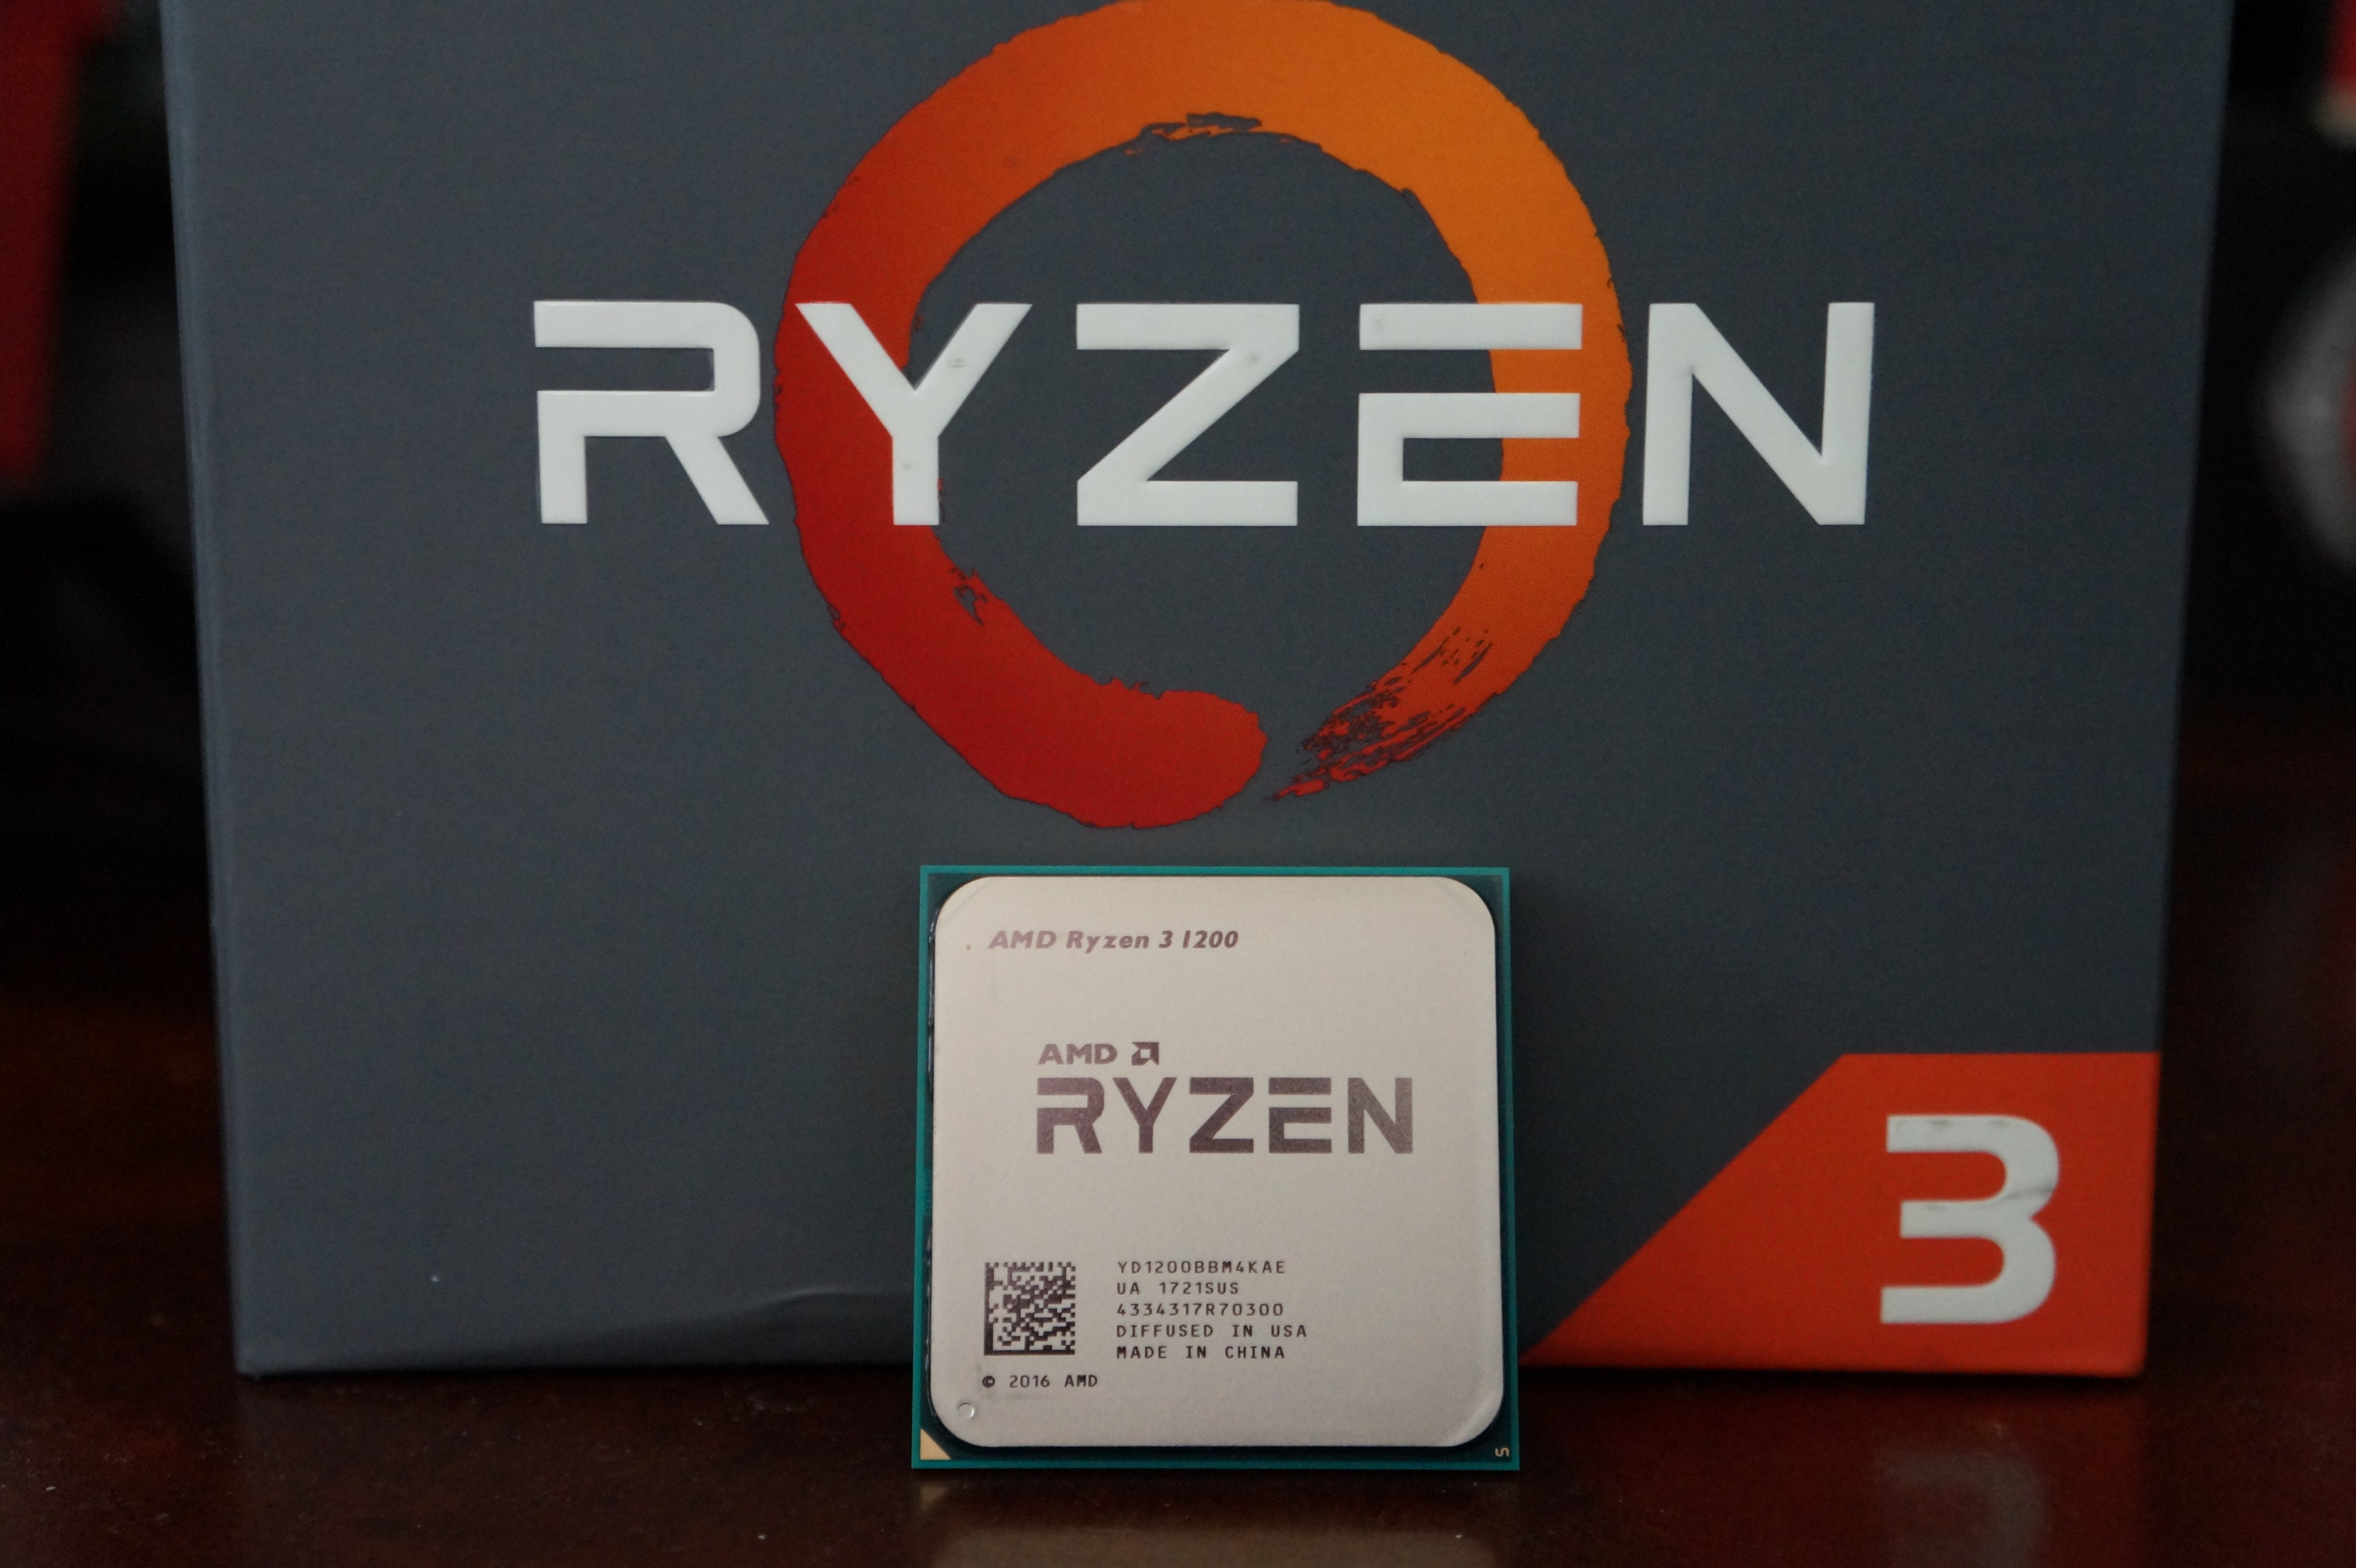 Build a budget Ryzen gaming PC for $550 or less - PC World